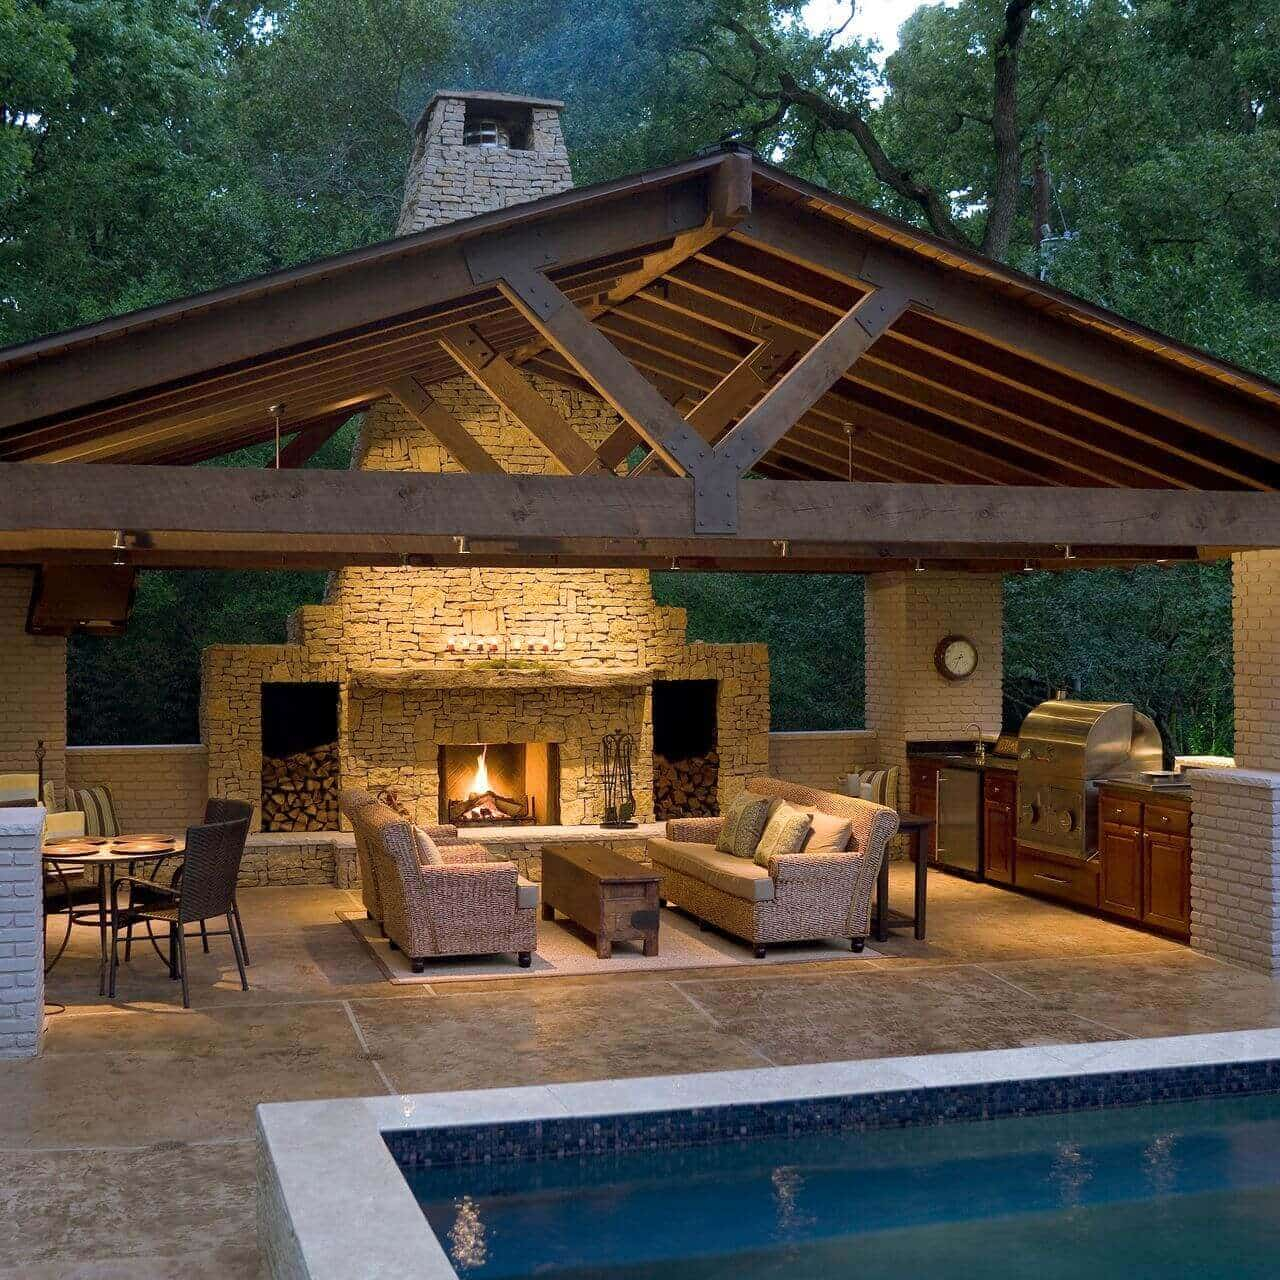 Best Pool House Design Ideas That Complete Your Dream The